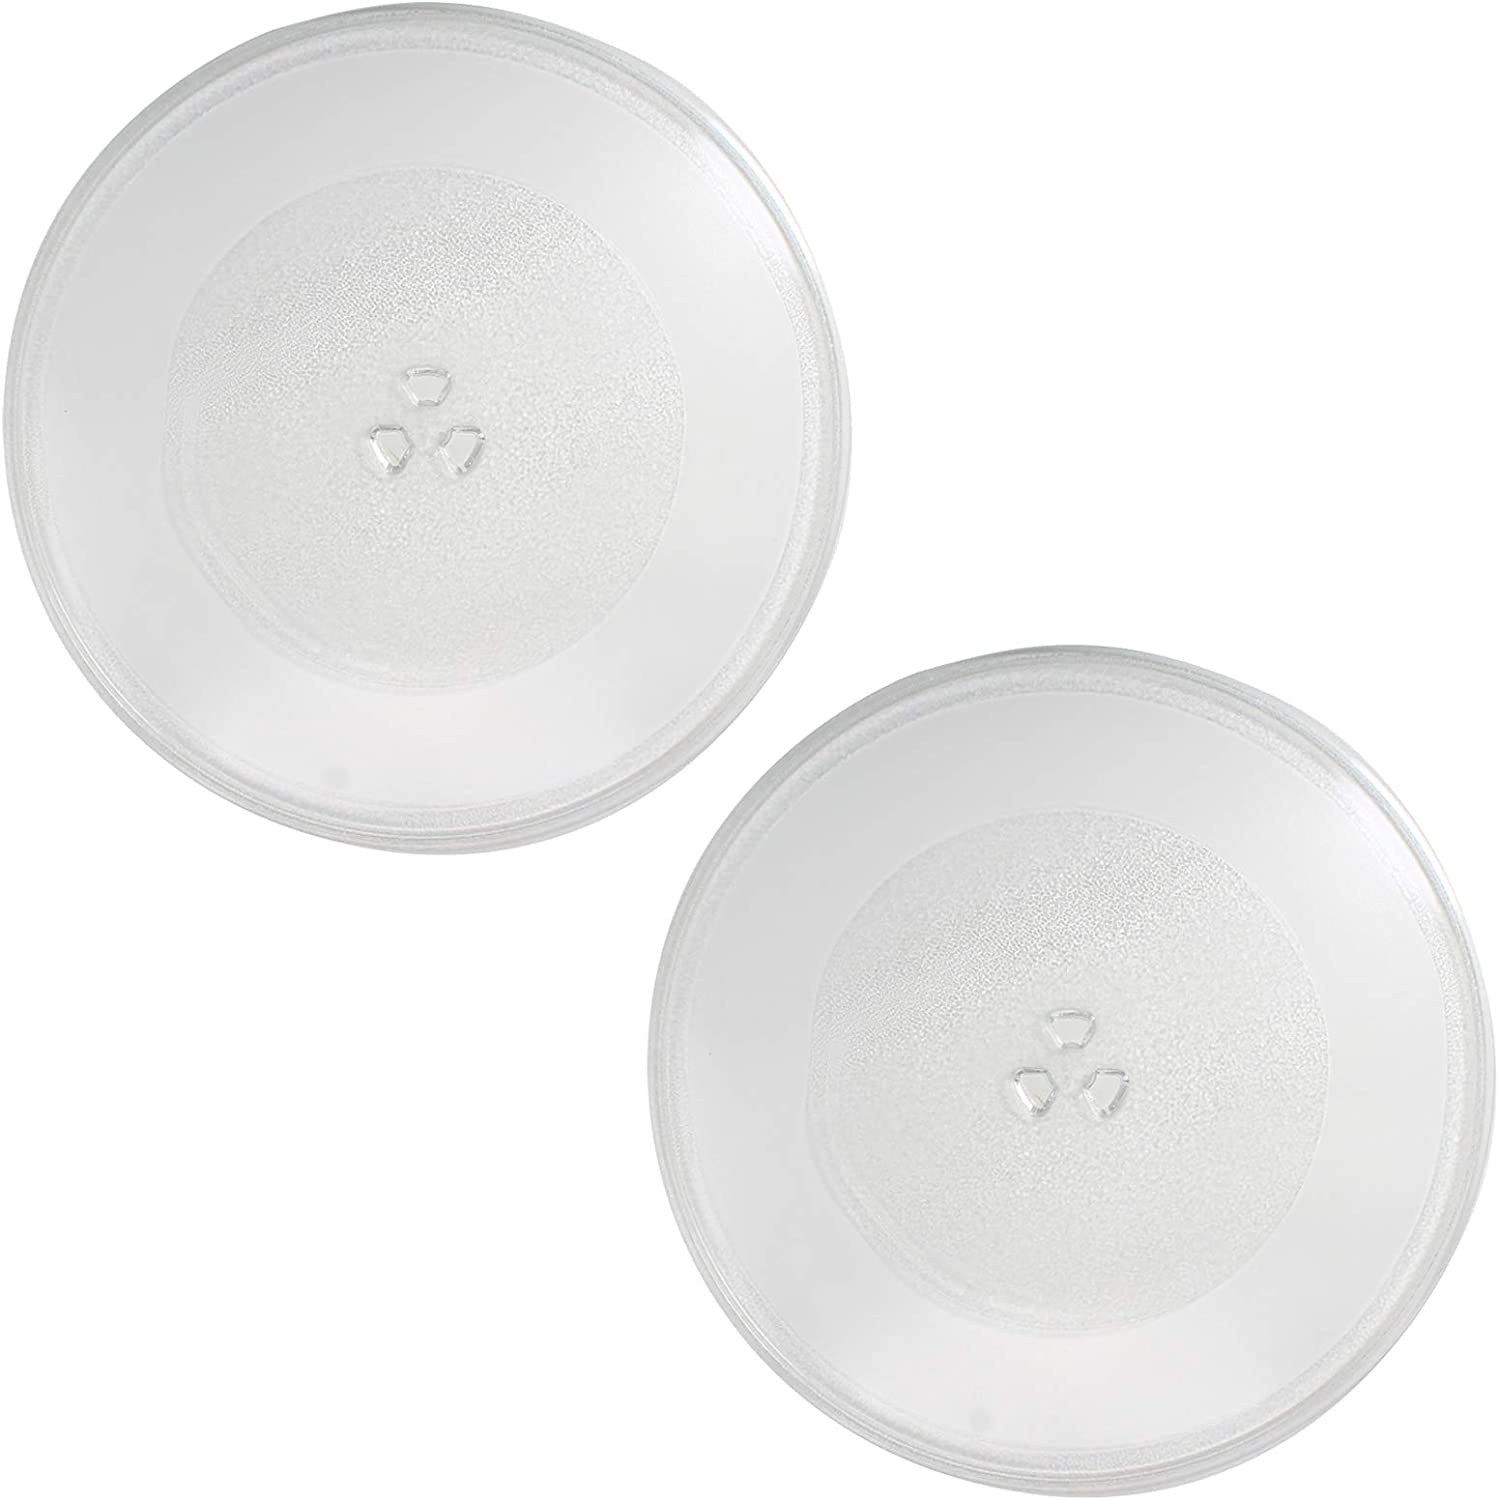 2-Pack NTNT-A108 Microwave Glass 67% OFF of fixed price Plate price for Replacement Turntable